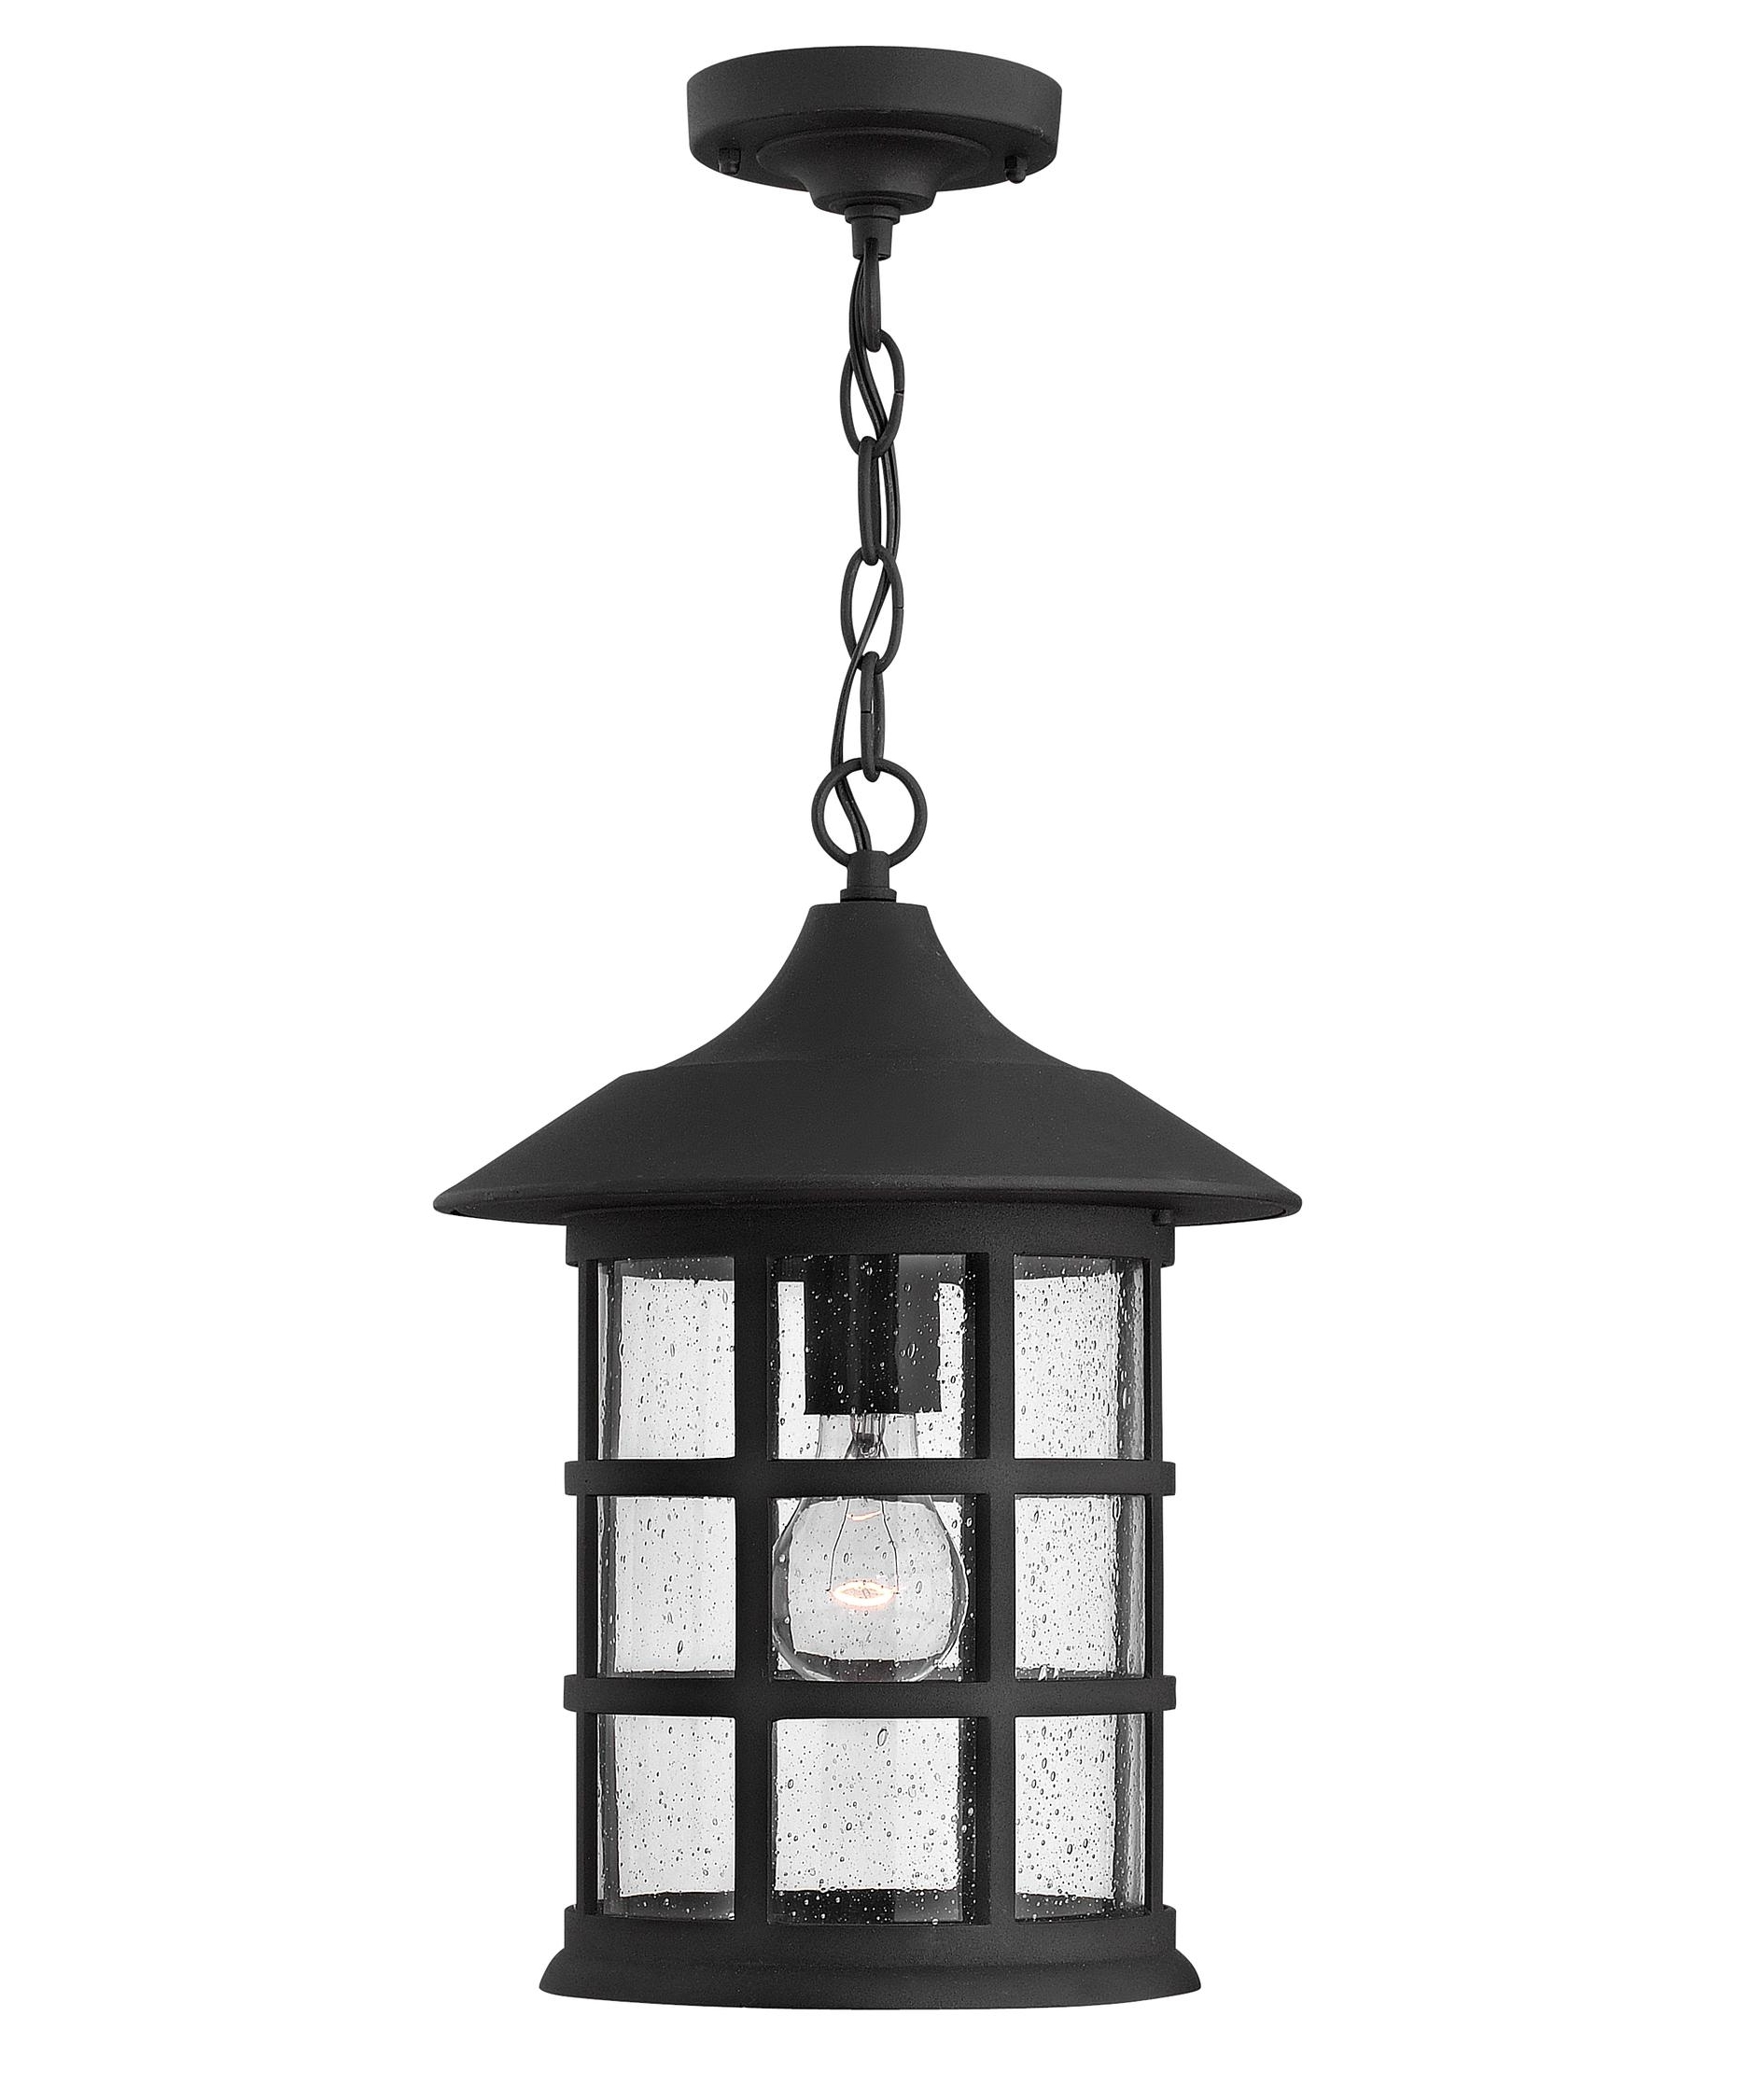 2019 Hinkley Lighting 1802 Freeport 10 Inch Wide 1 Light Outdoor Hanging Pertaining To Outdoor Hanging Lanterns For Candles (Gallery 10 of 20)